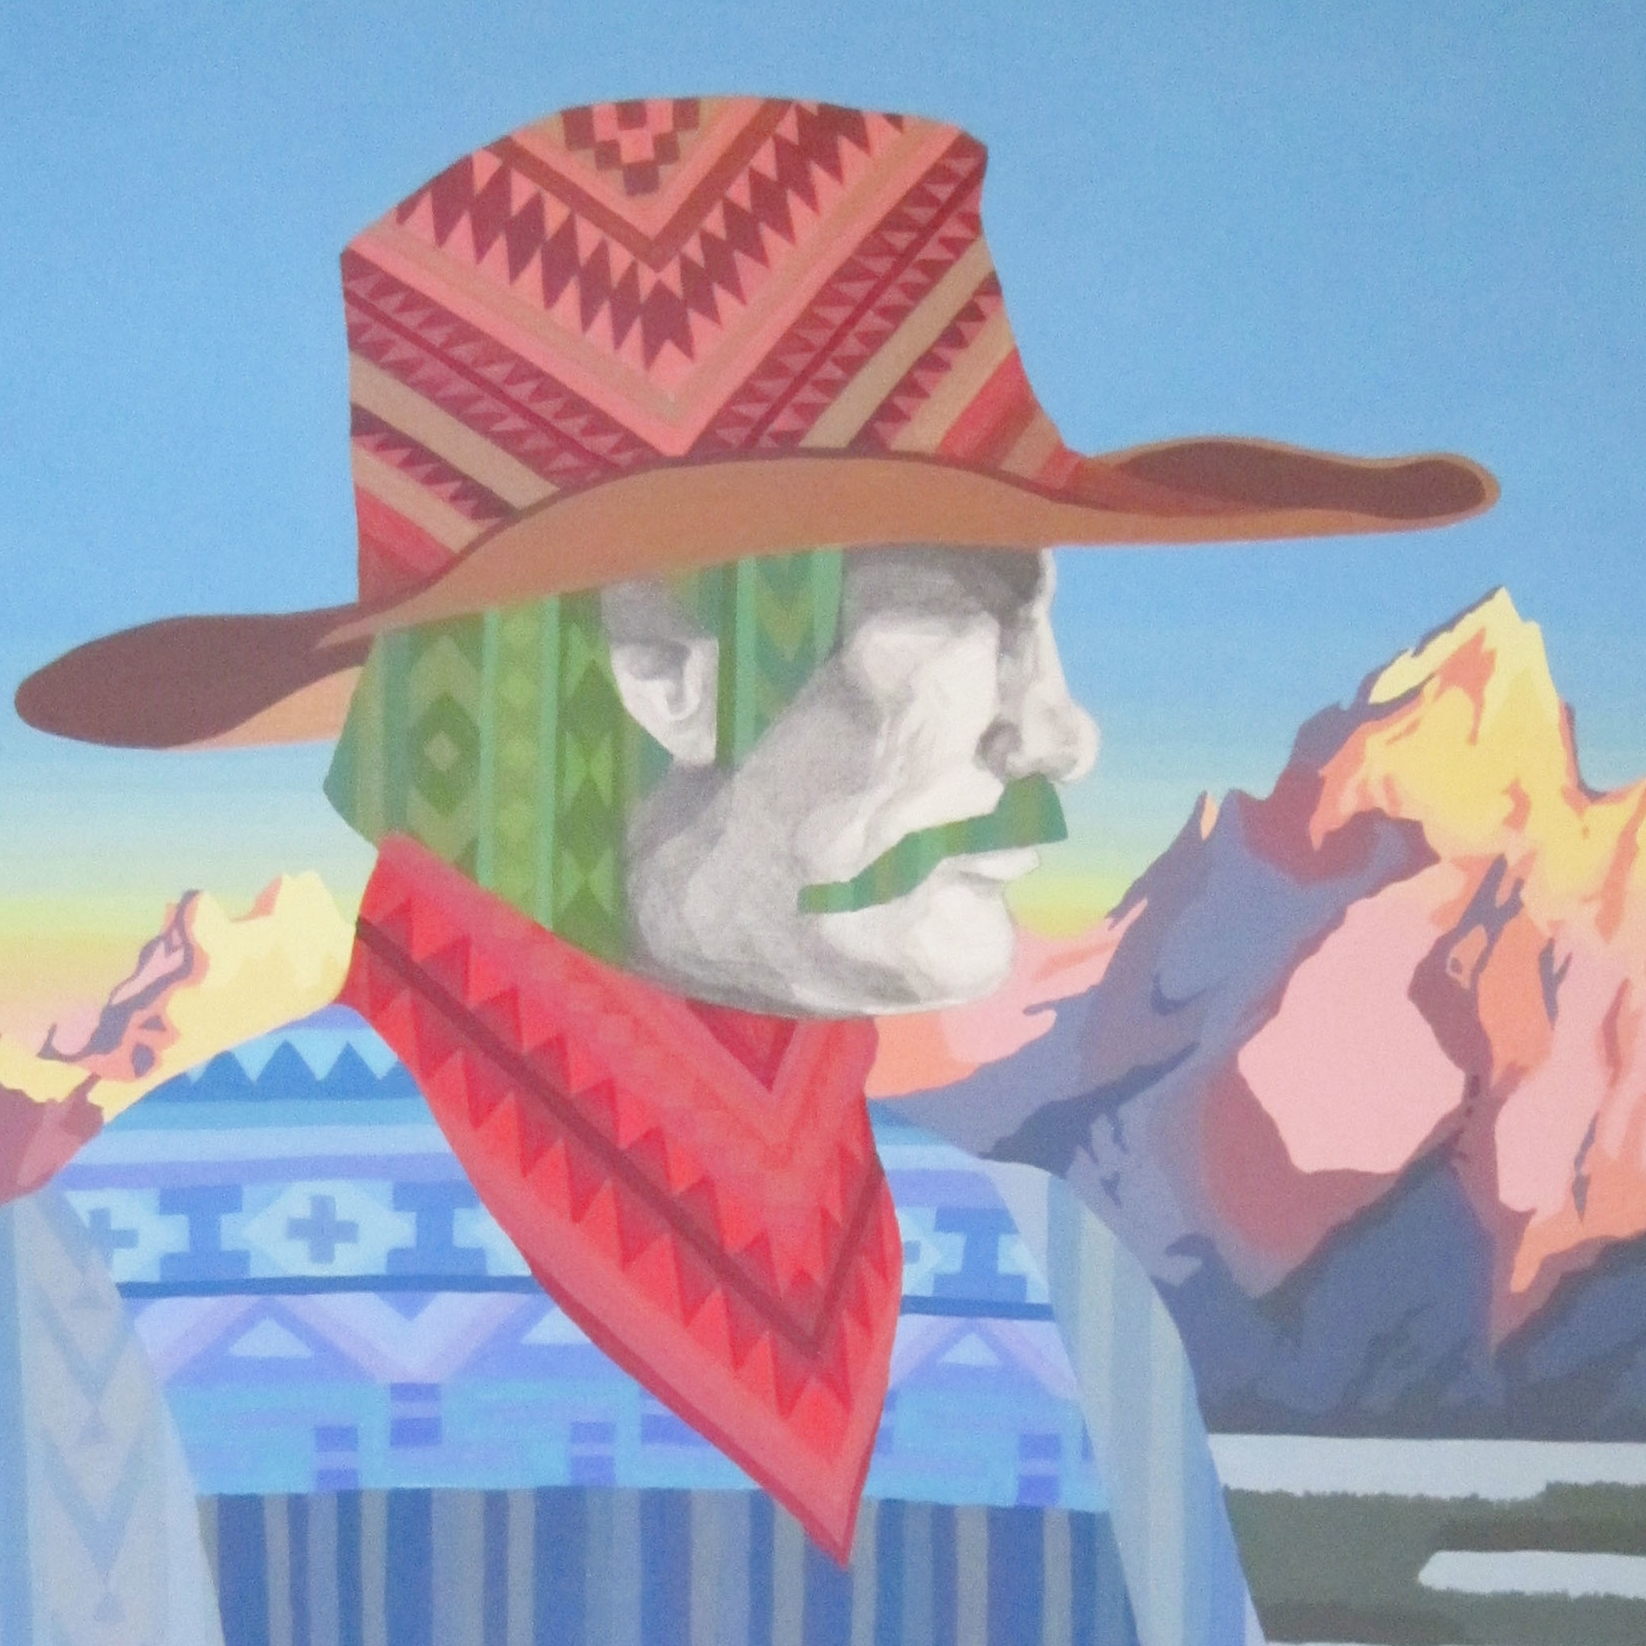 Sold - The mountain man